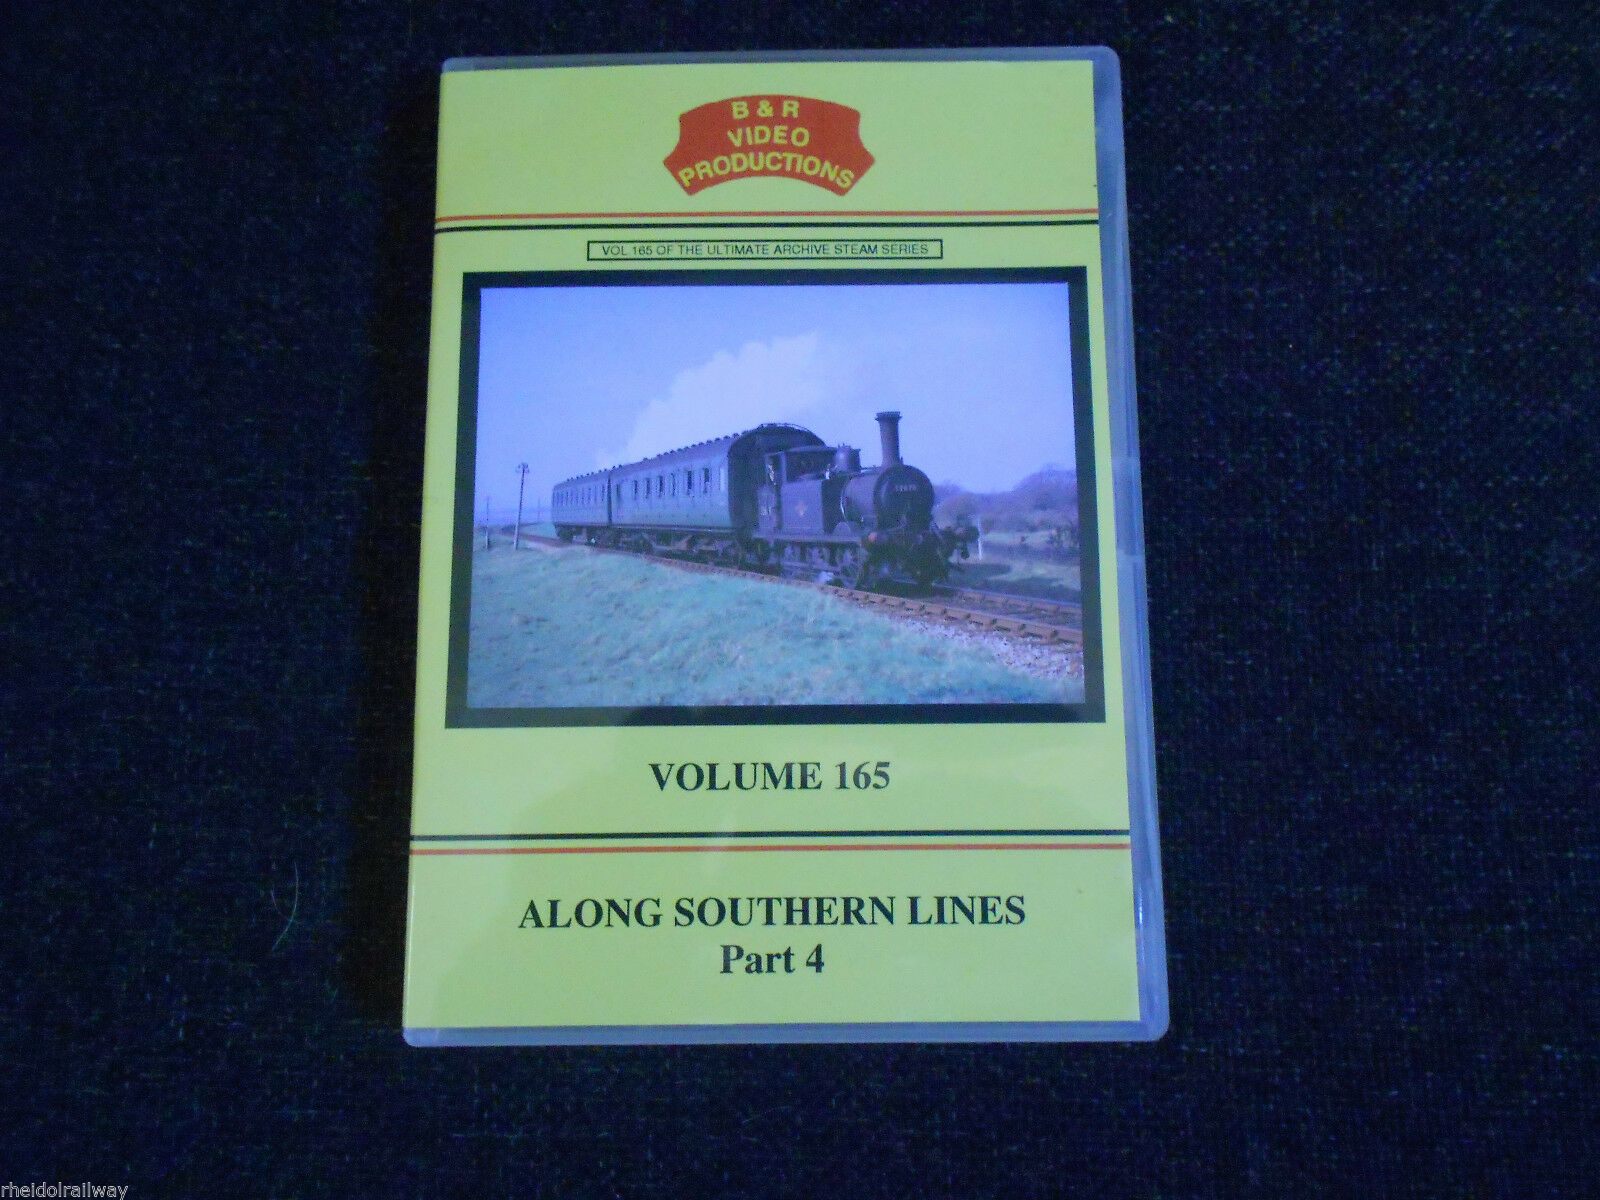 Portsmouth, Eastleigh Shed, Along Southern Lines Part 4, B & R Volume 165 DVD - The Vale of Rheidol Railway